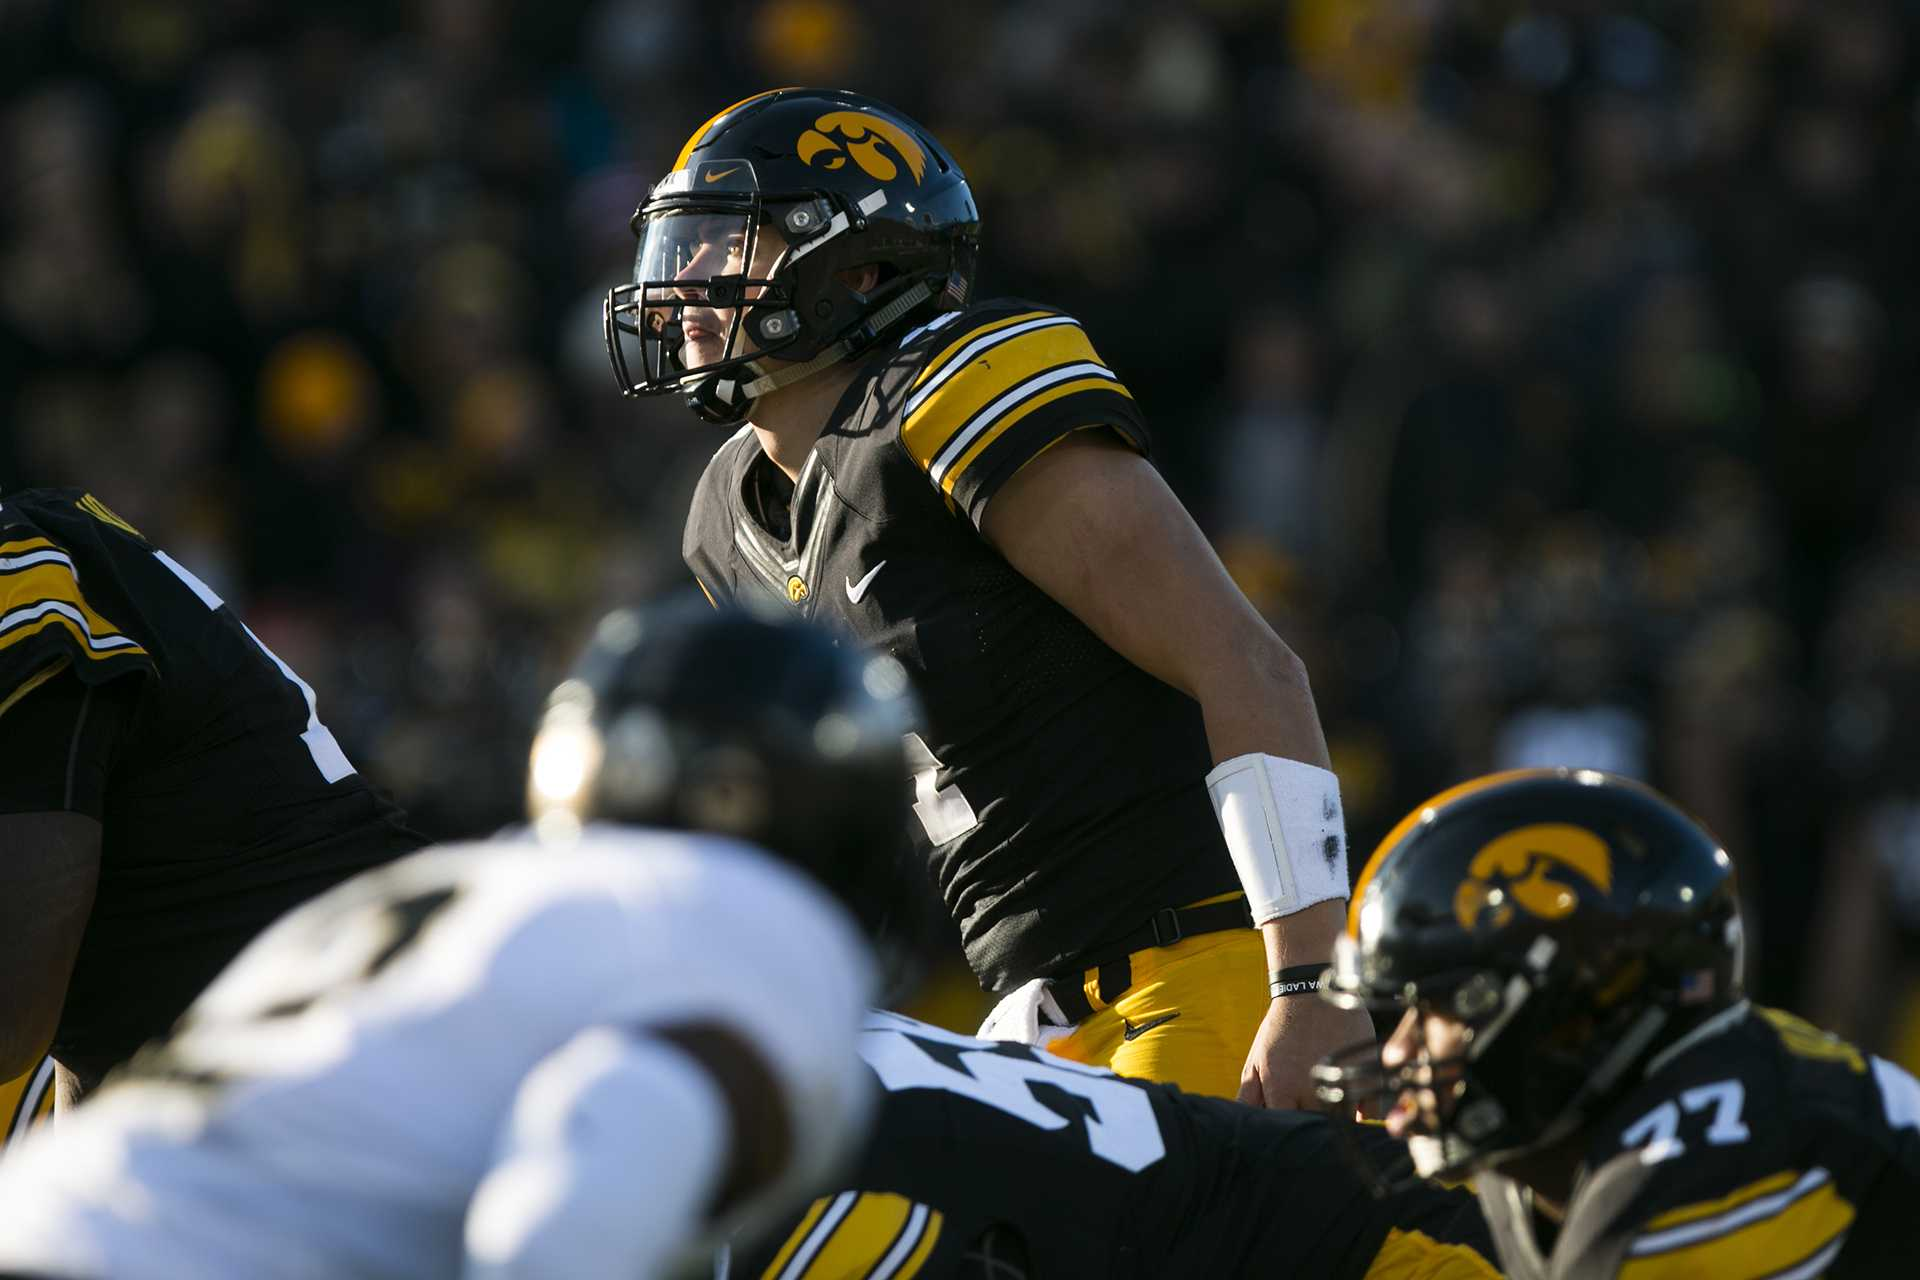 Iowa quarterback Nate Stanley looks up into the sun during the Iowa/Purdue football game in Kinnick Stadium on Saturday, Nov. 18, 2017. The Boilermakers defeated the Hawkeyes, 24-15. (Joseph Cress/The Daily Iowan)